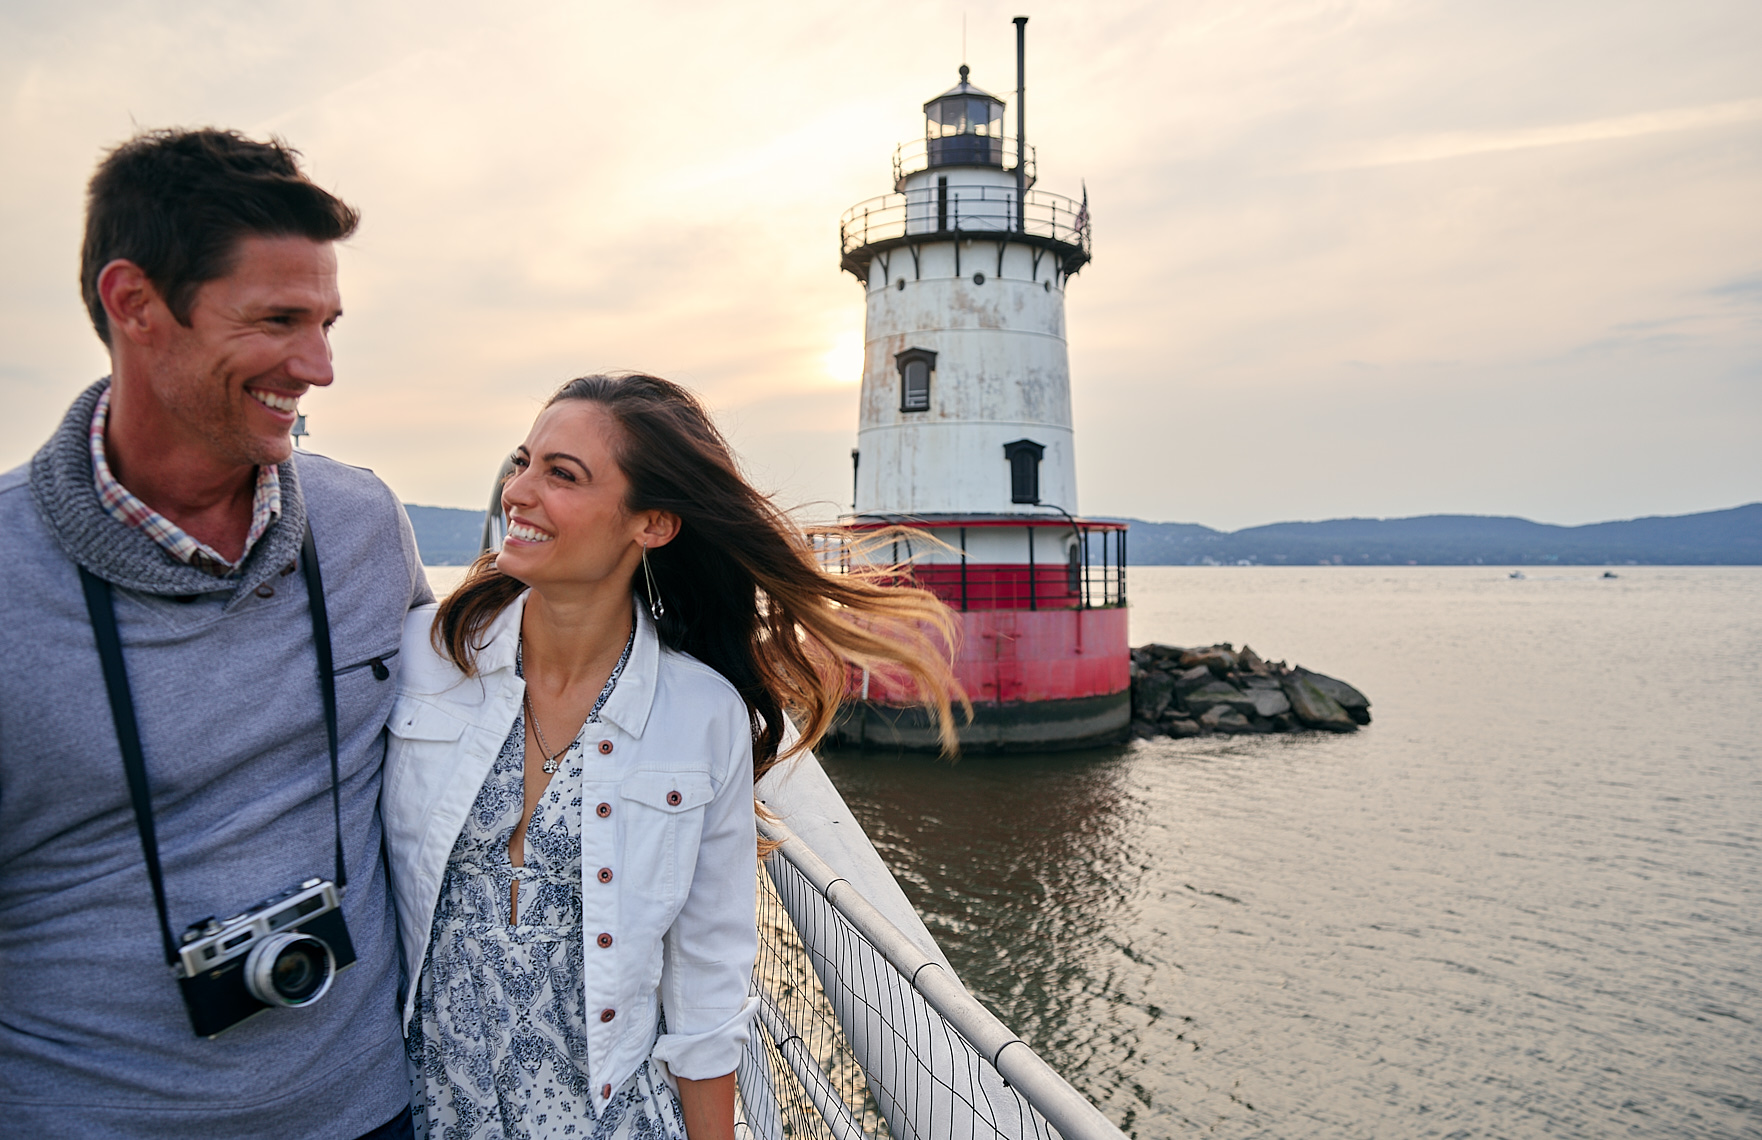 Travel lifestyle,  a young couple laughs along the Hudson